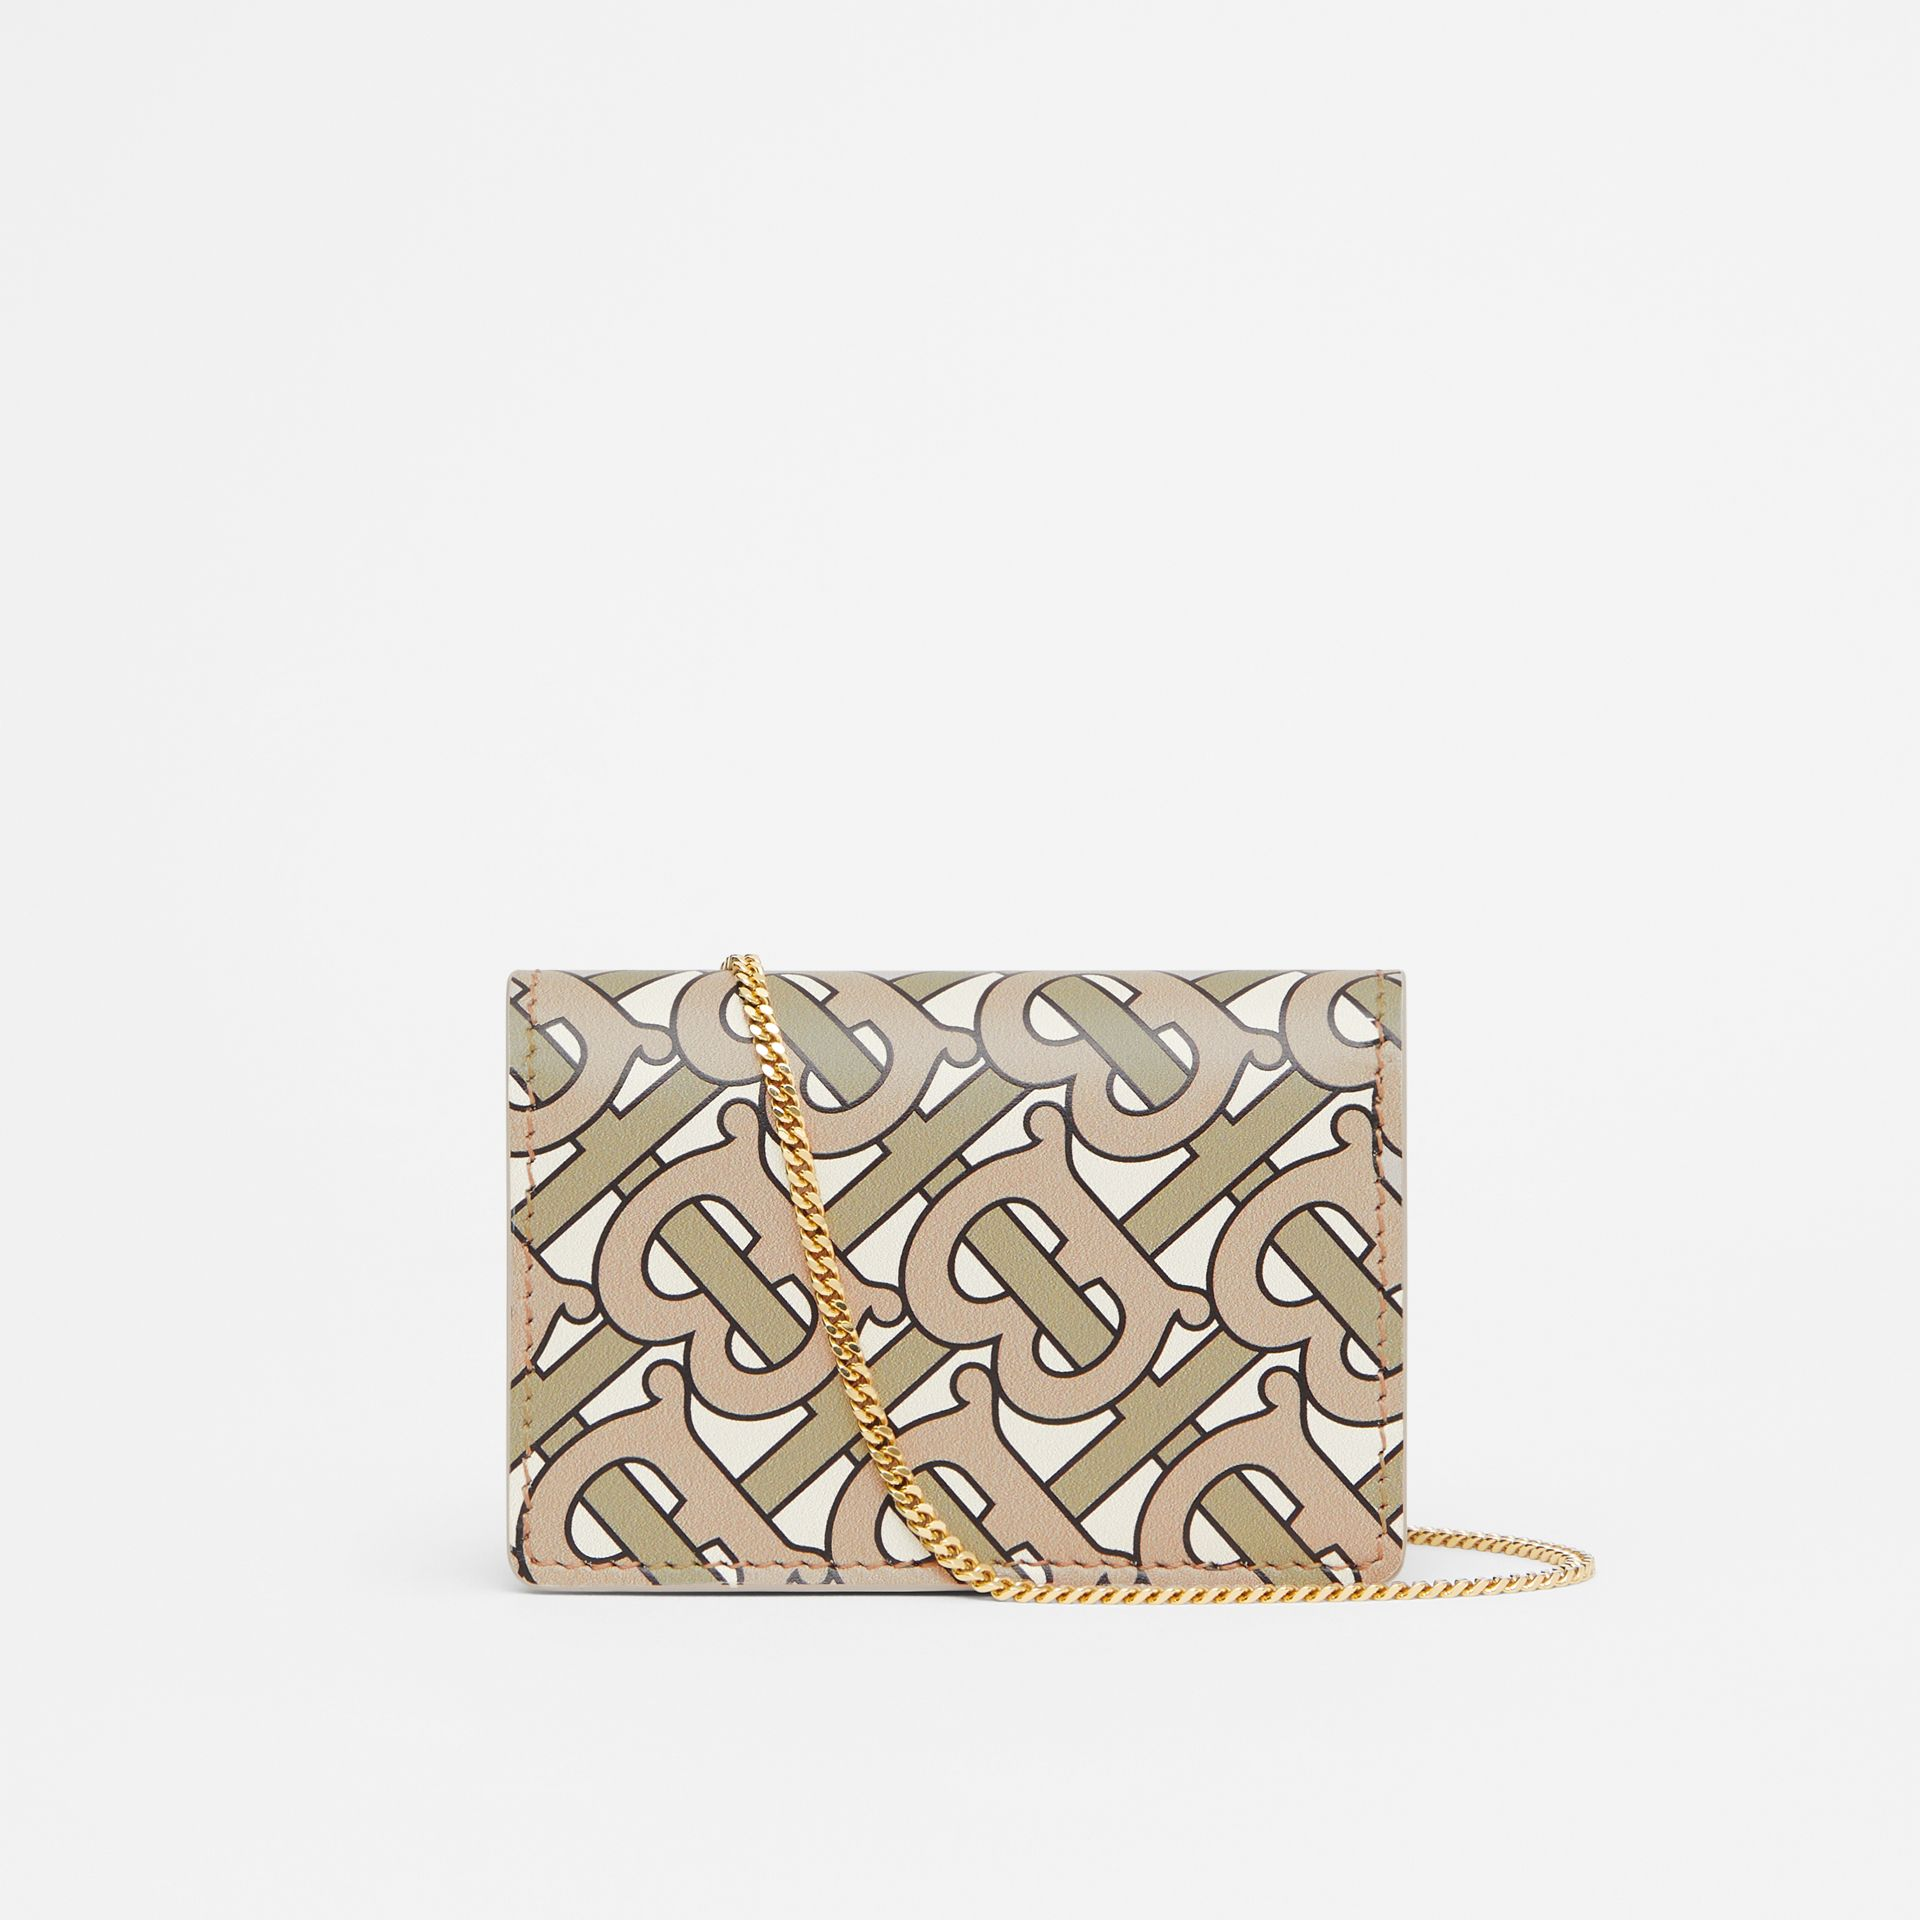 Porte-cartes Monogram avec sangle amovible (Beige) - Femme | Burberry Canada - photo de la galerie 7